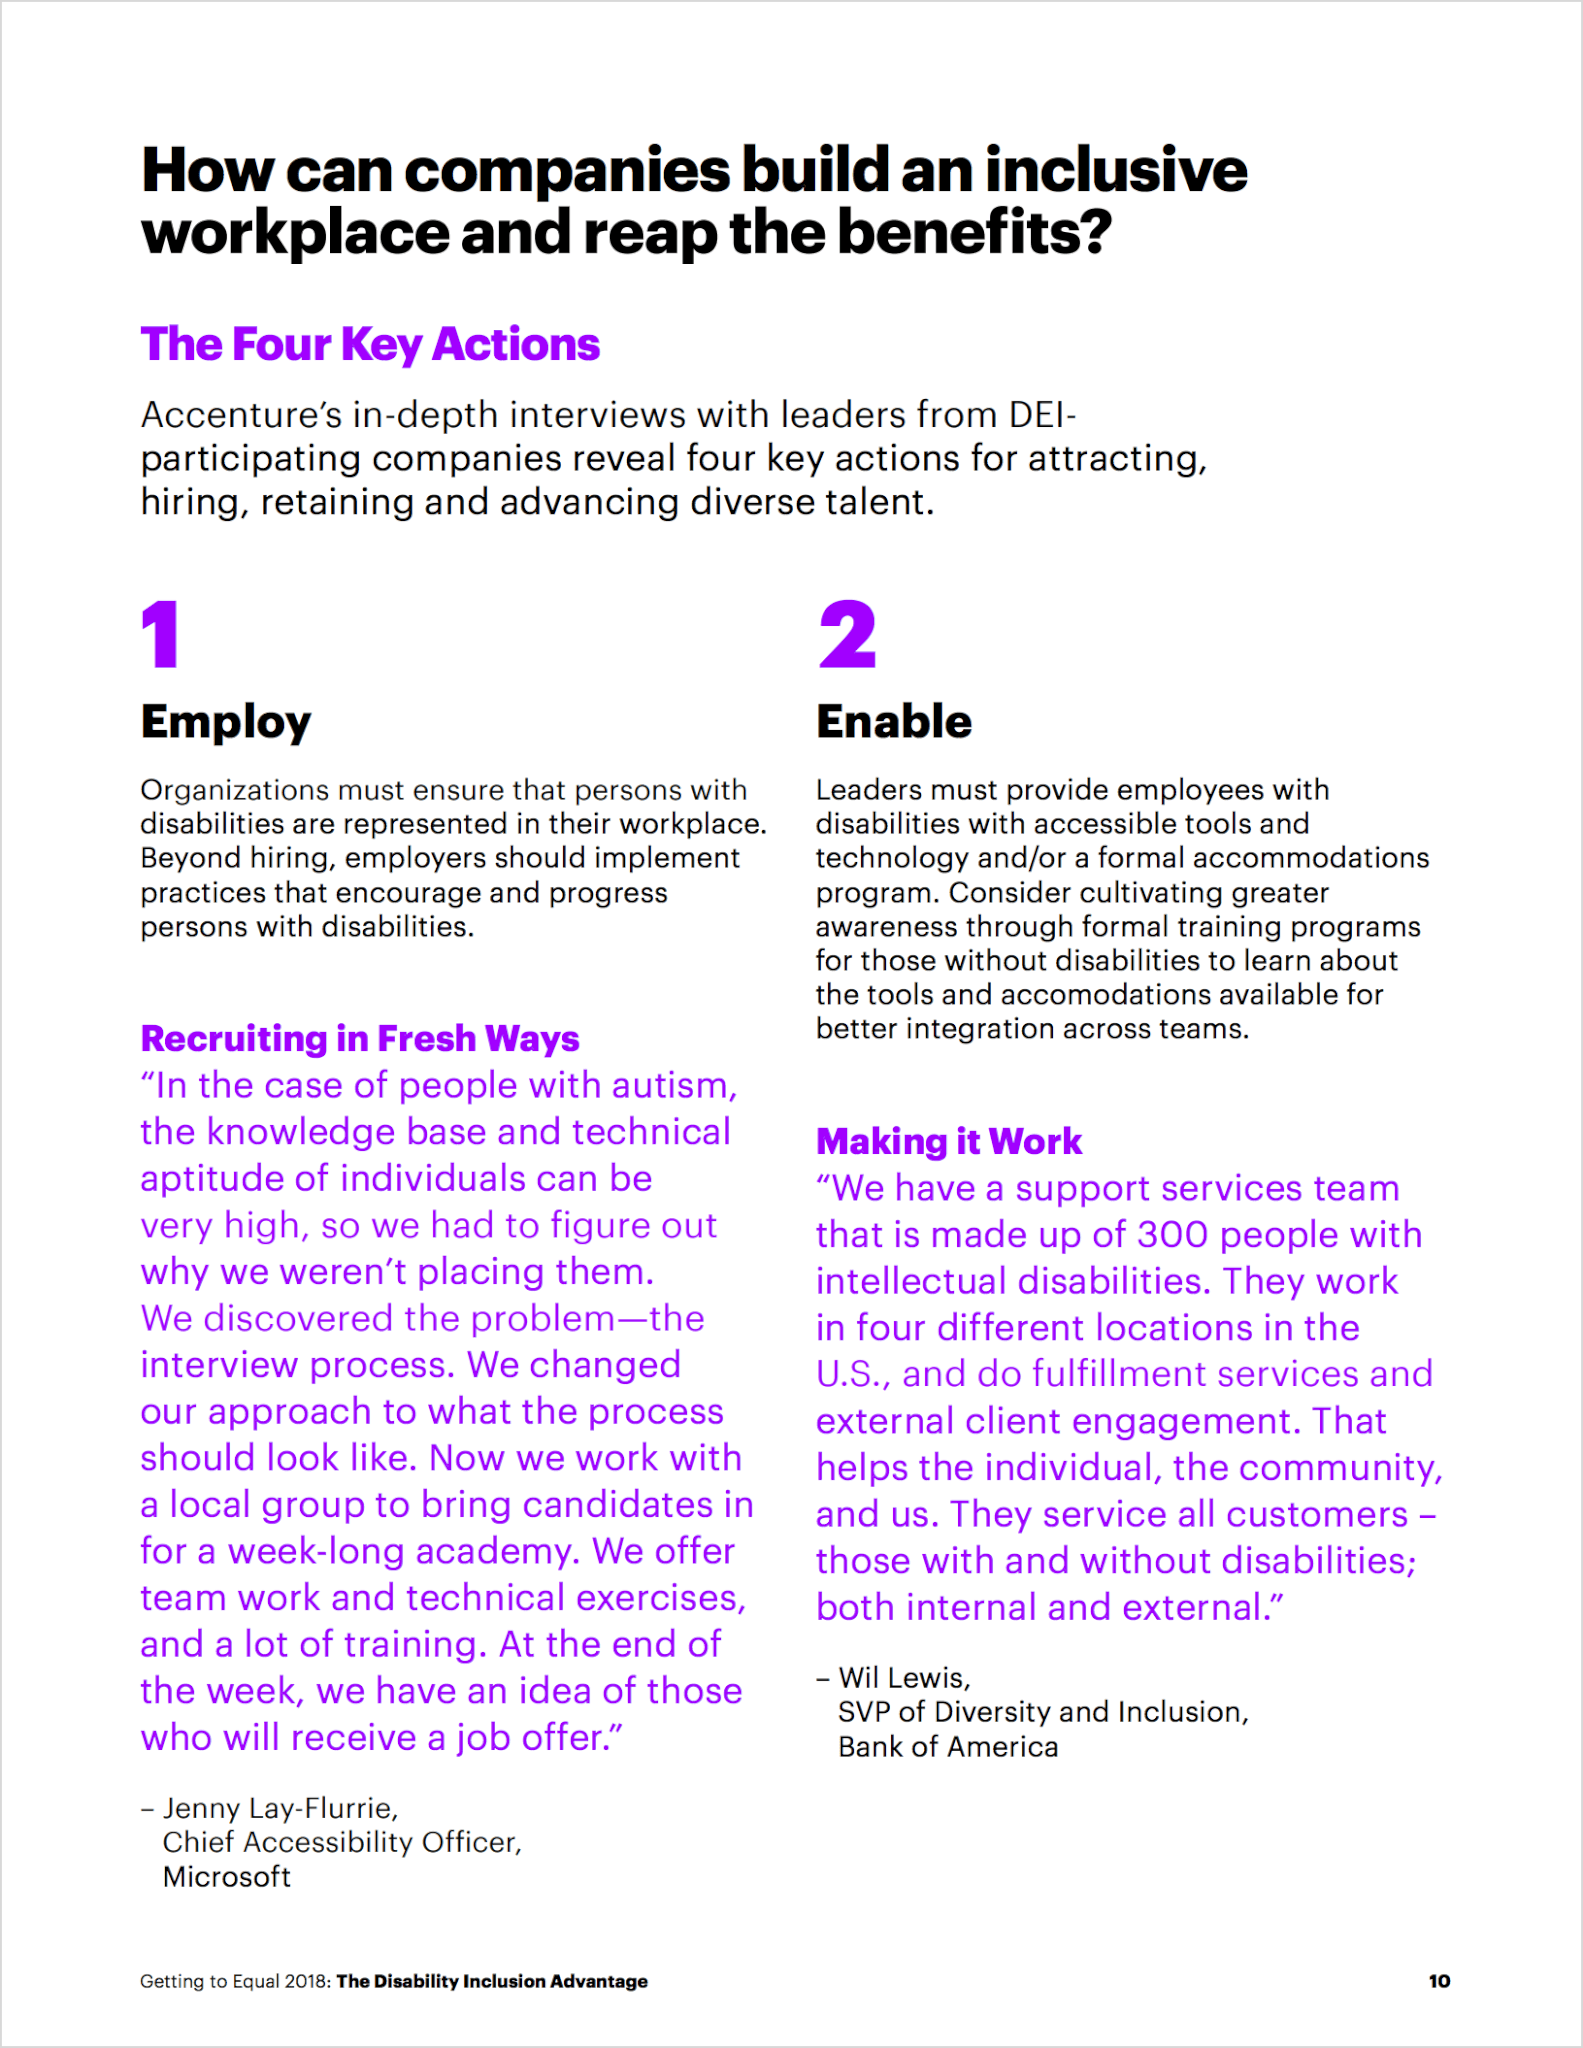 accenture page 9